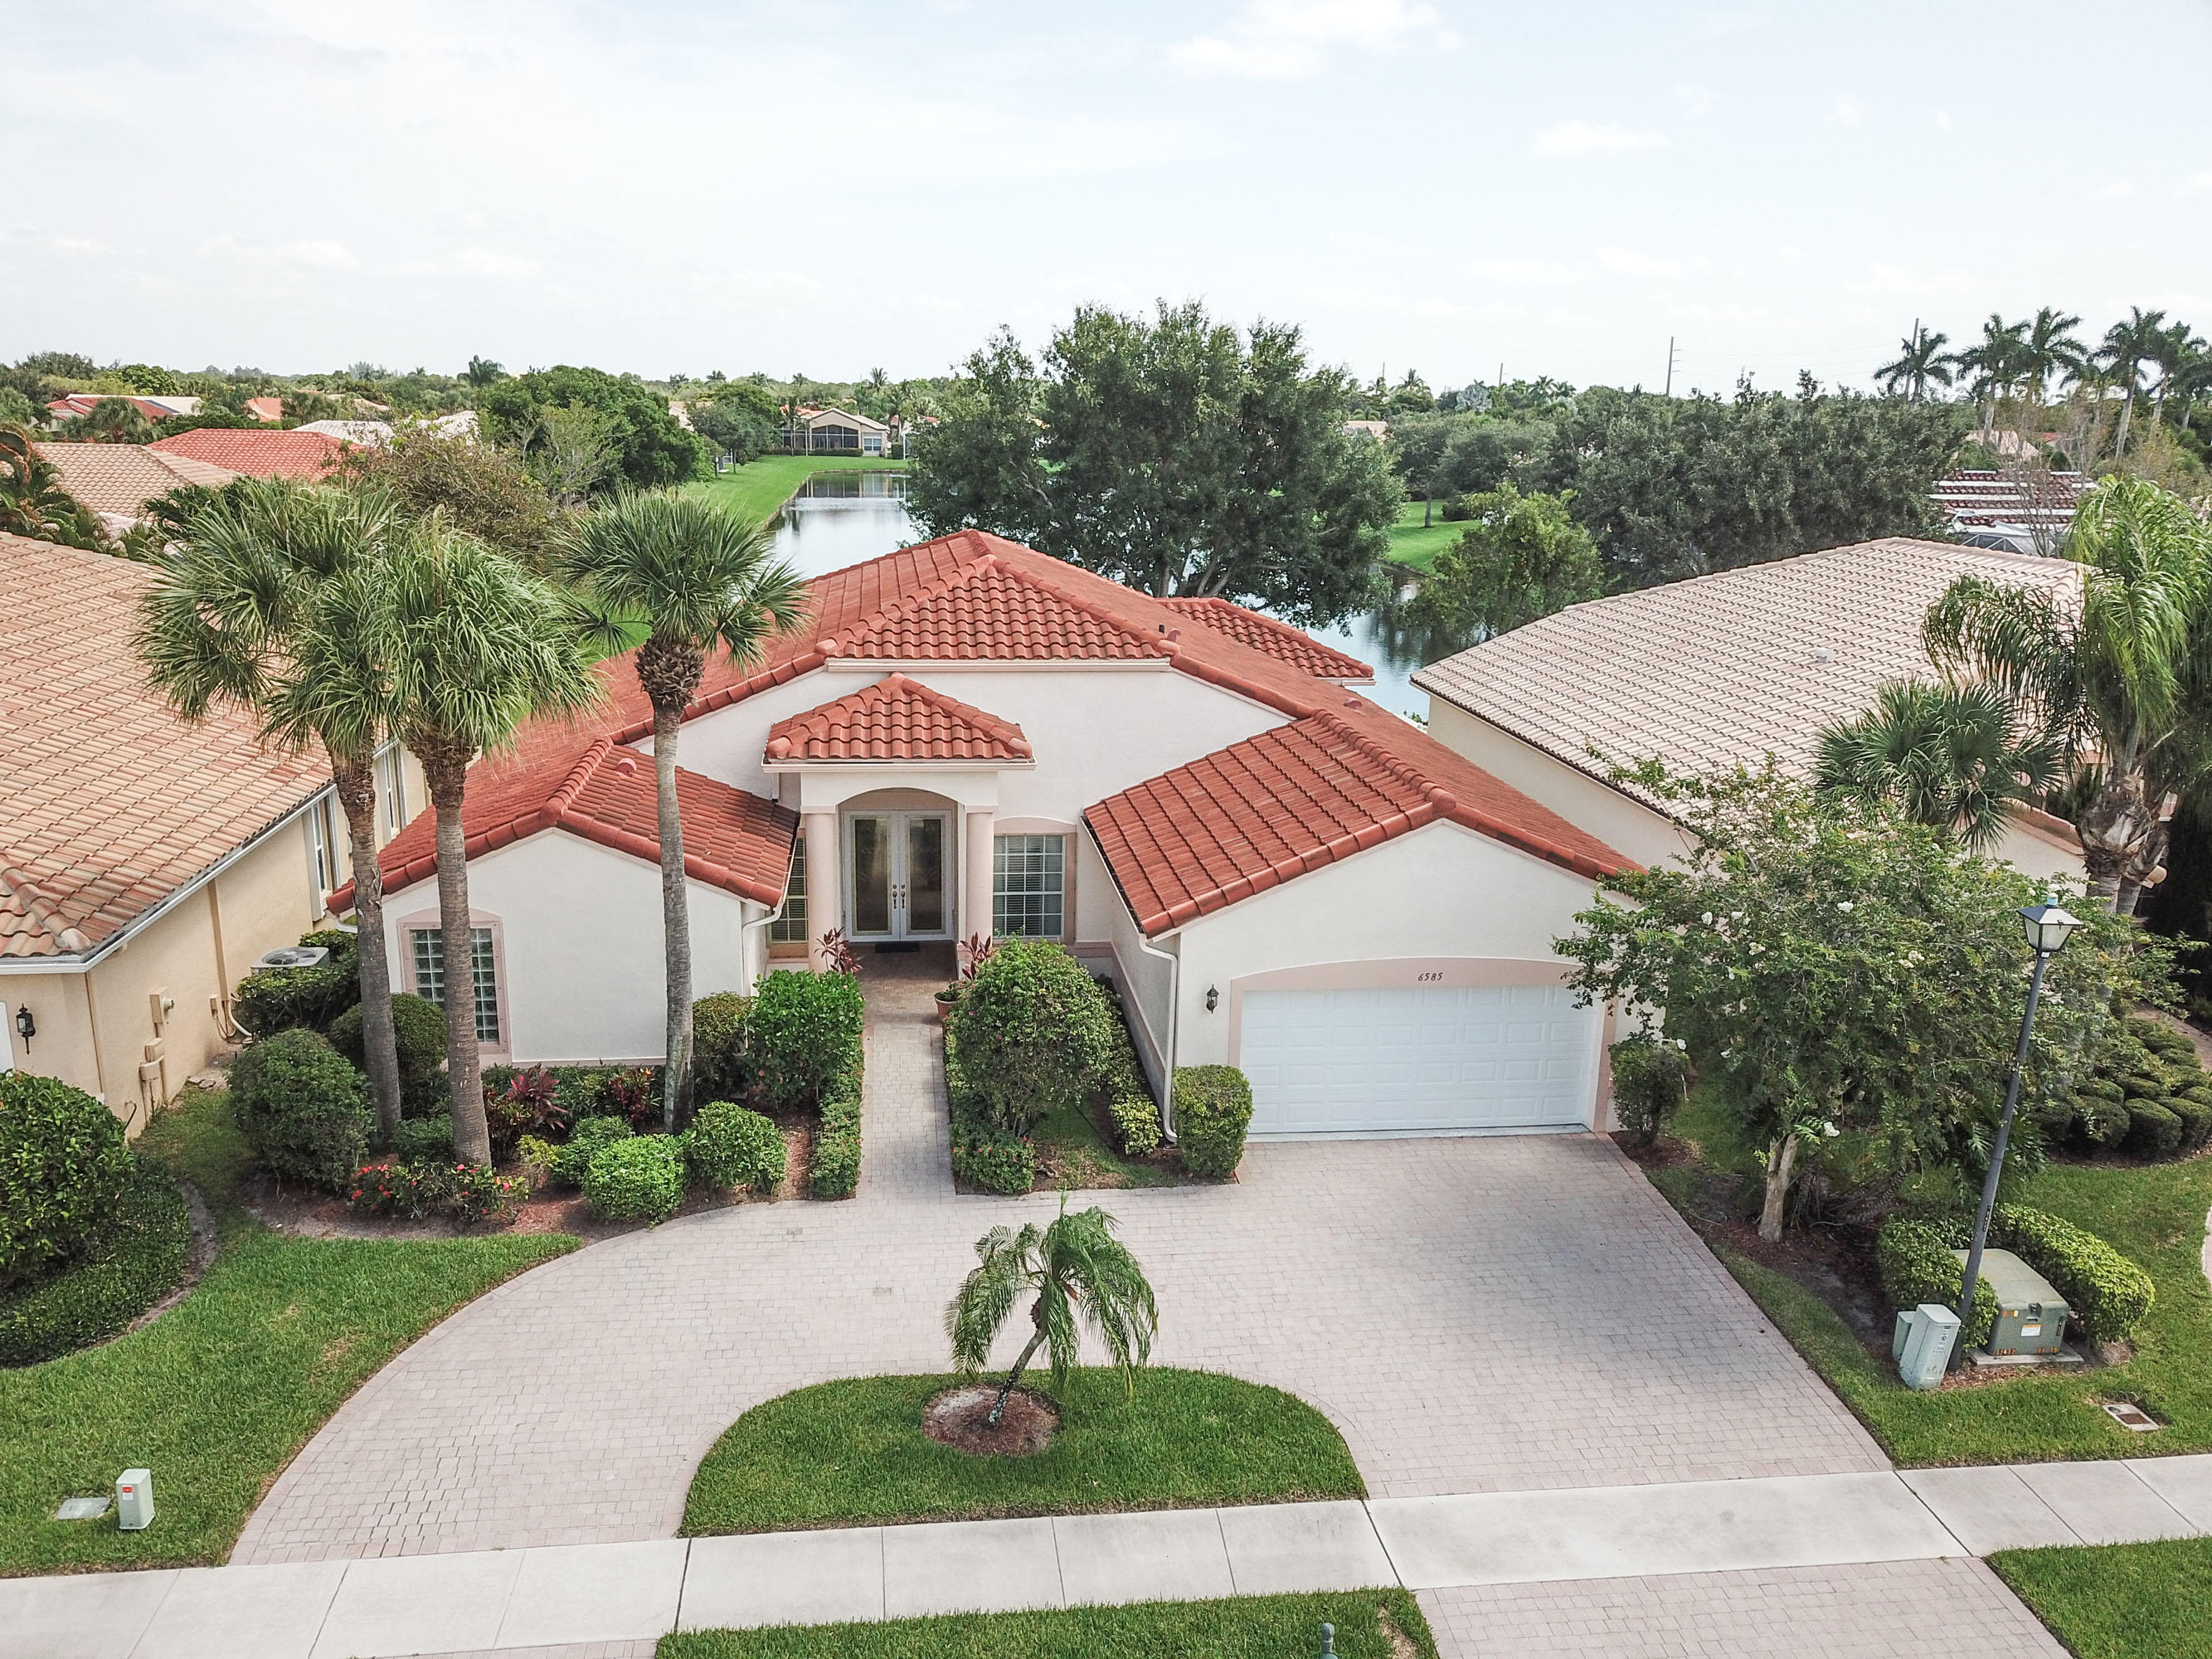 Home for sale in Ponte Vecchio Boynton Beach Florida